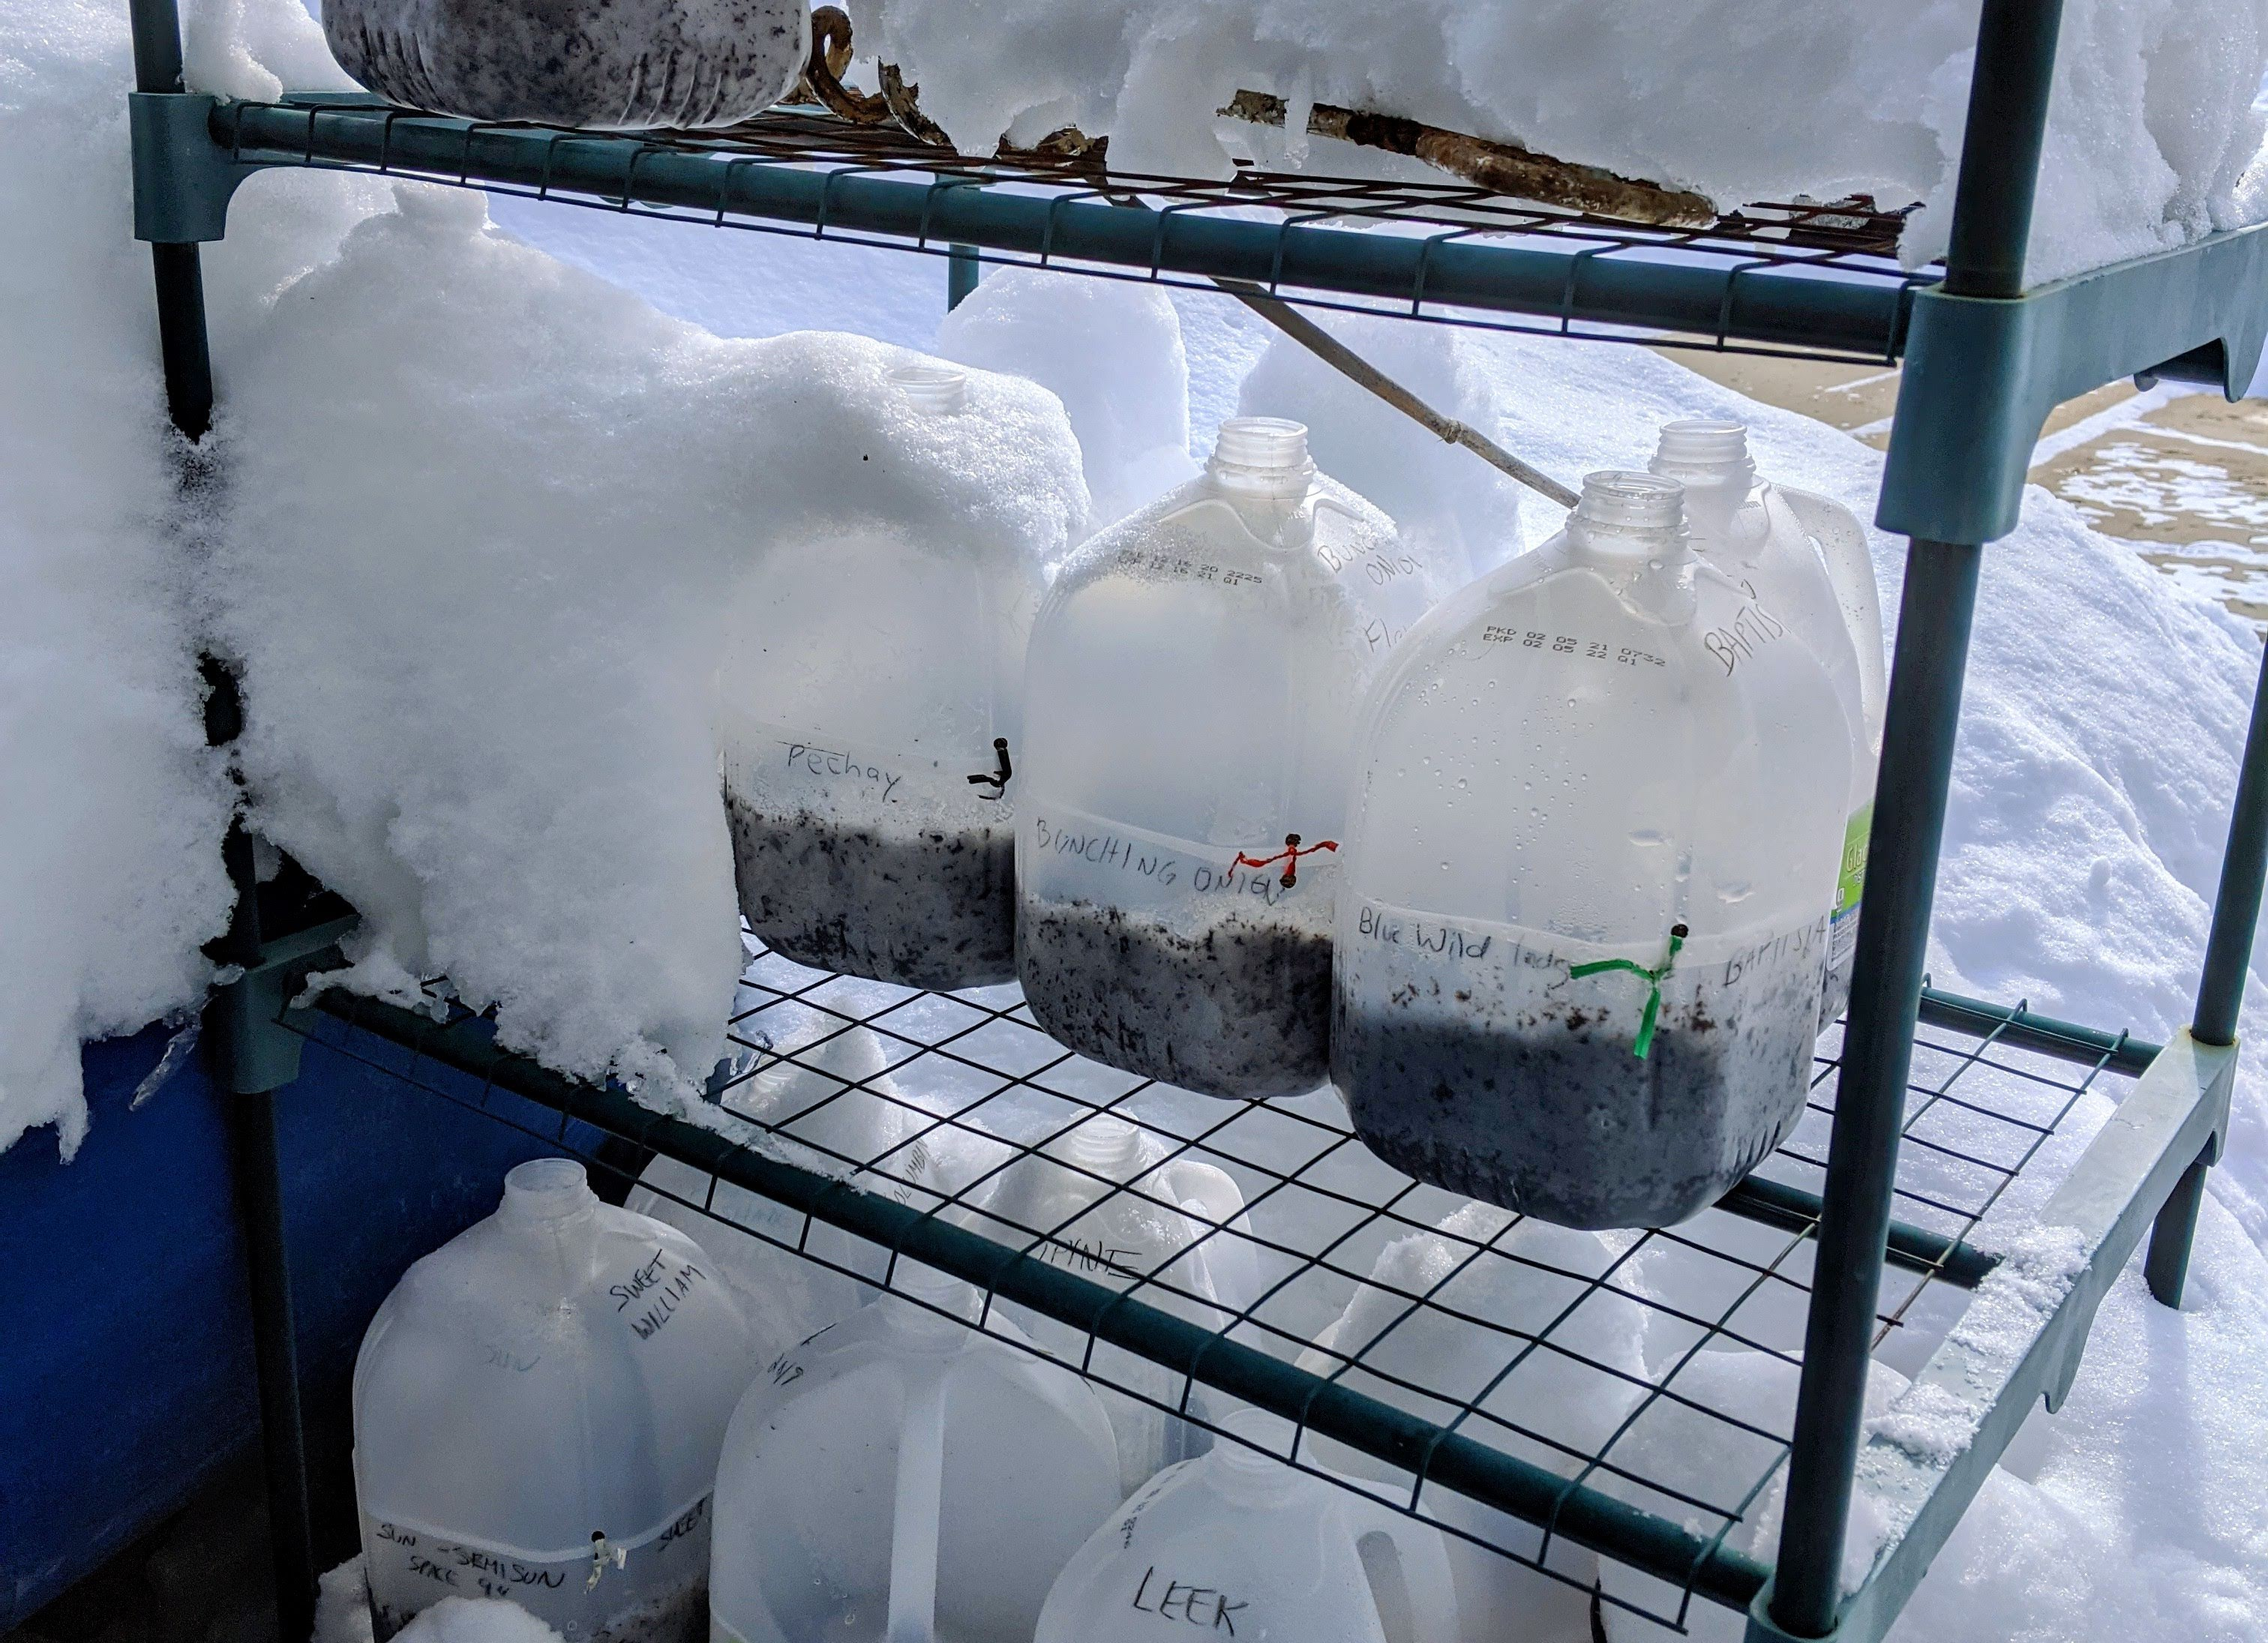 Winter Sowing Containers Outside in the Snow